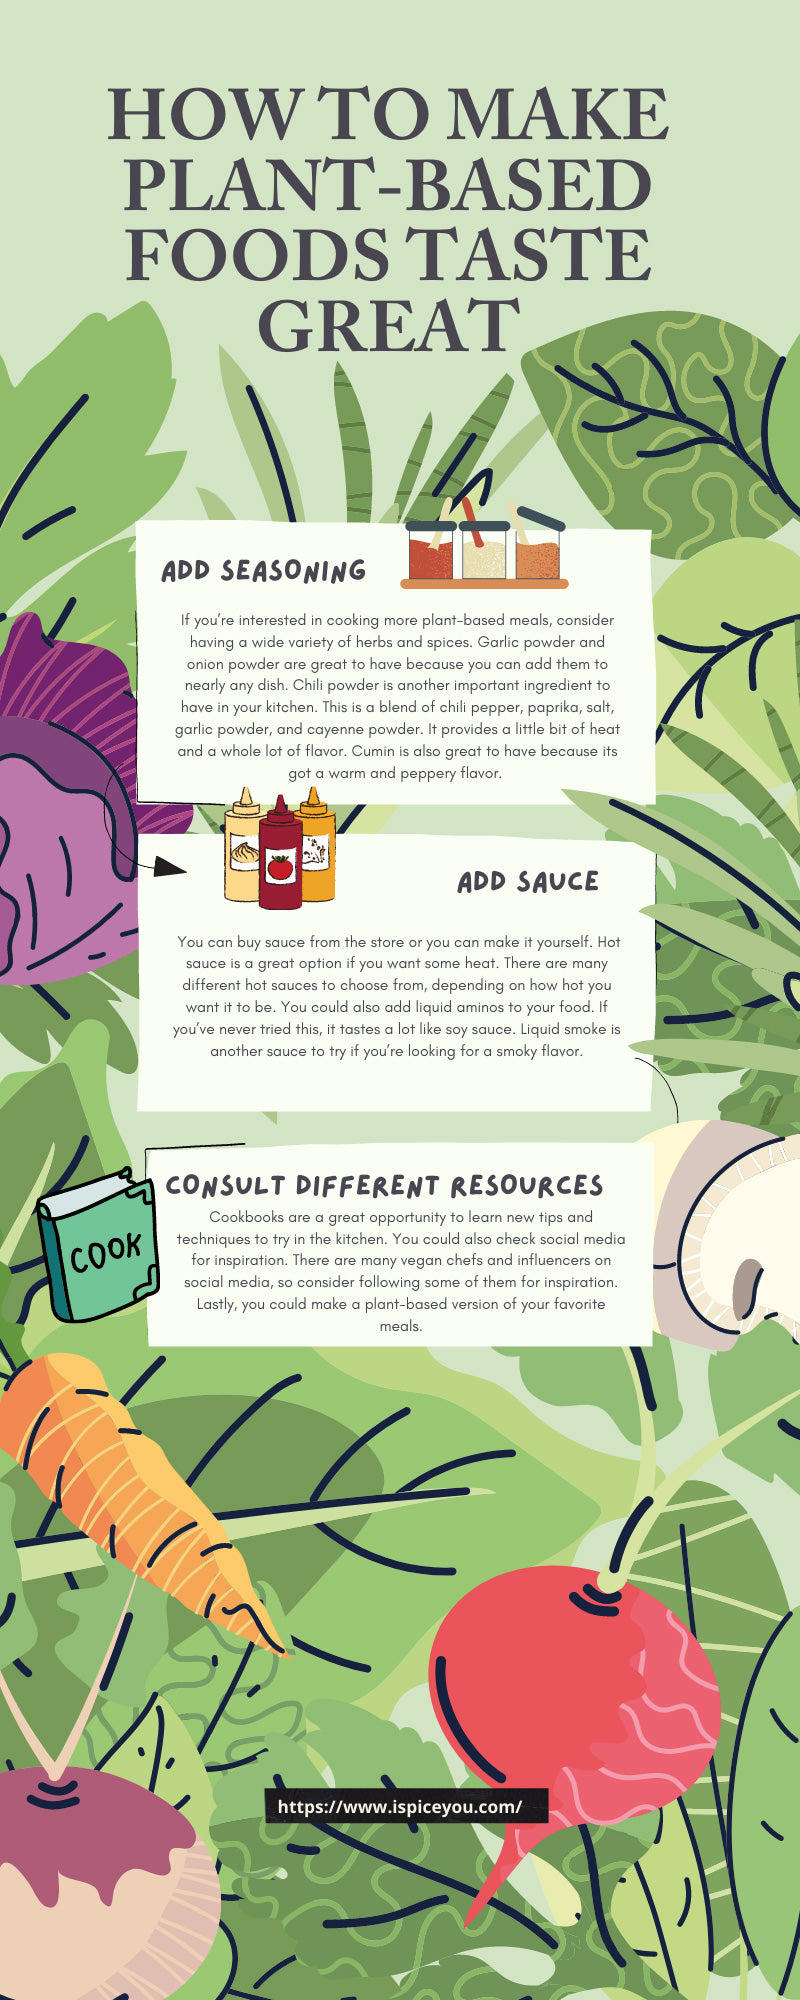 How To Make Plant-Based Foods Taste Great